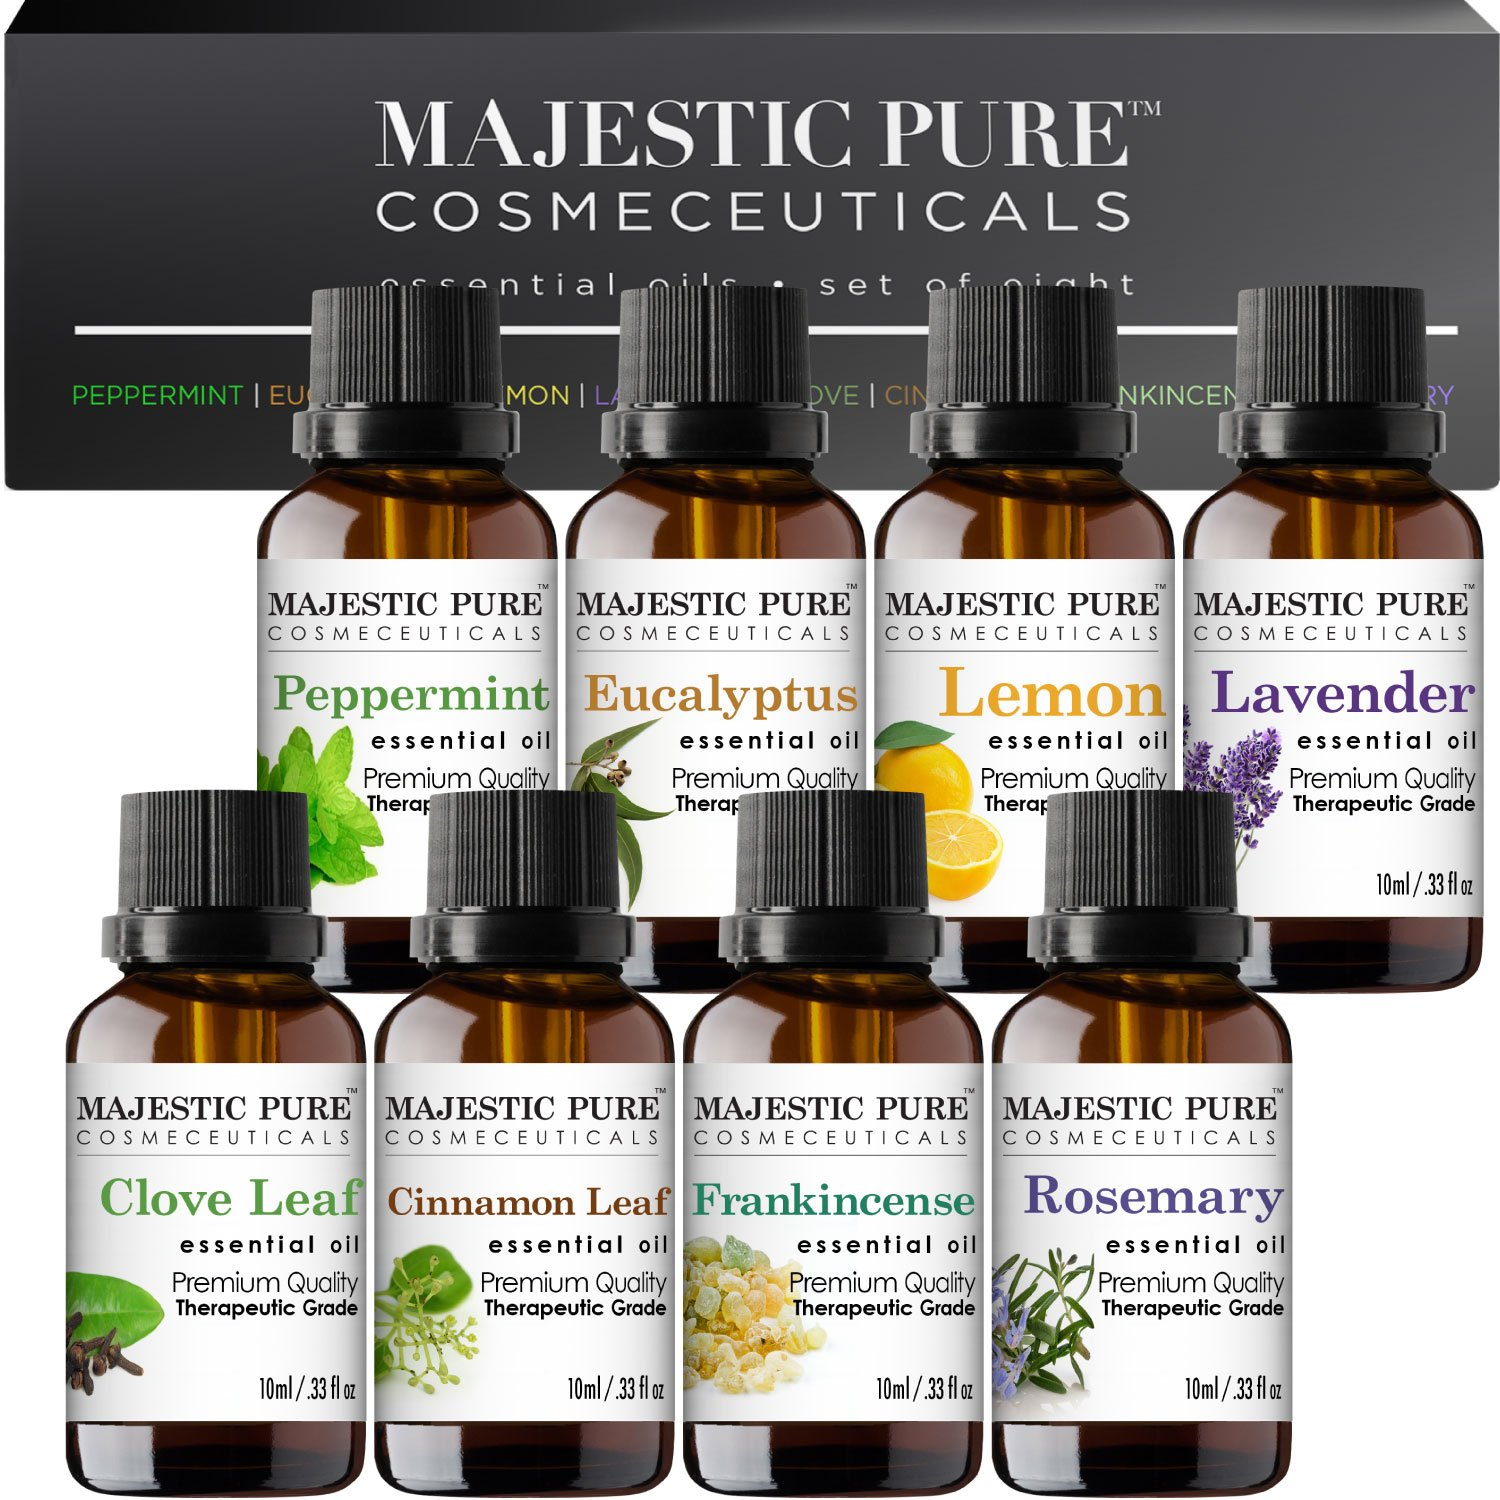 MajesticPure Aromatherapy Essential Oils Set, Includes Lavender, Frankincense, Peppermint, Eucalyptus, Lemon, Clove Leaf, Cinnamon Leaf & Rosemary Oils- Pack of 8-10 ml each by Majestic Pure (Image #2)